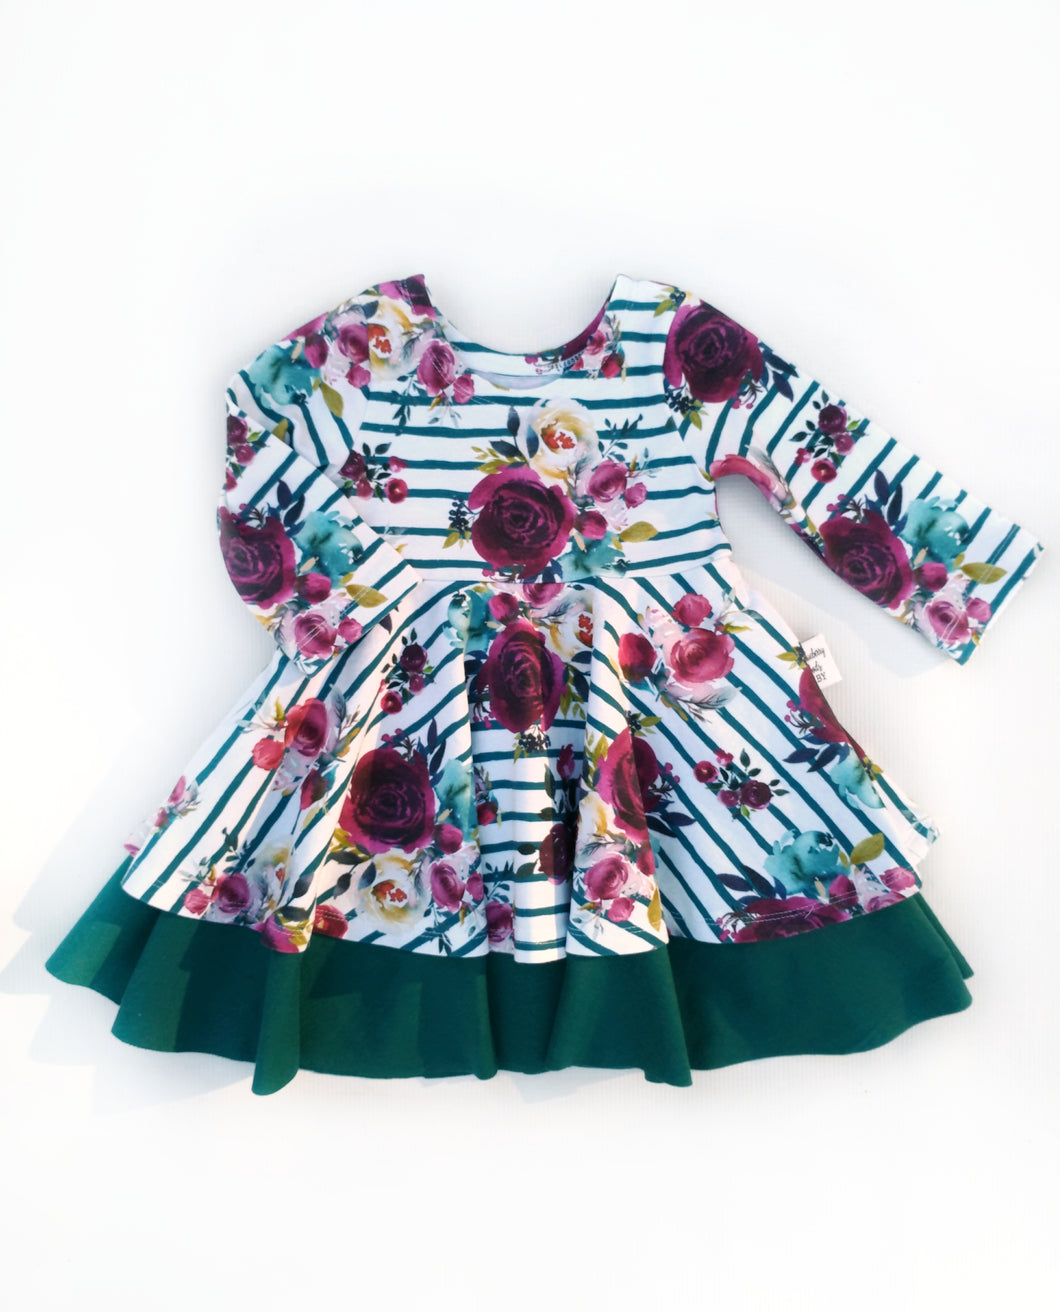 Infinity Peplum Dress - Burgundy and Teal Roses - Cotton Knit, sizes 9/12 months to 6 years